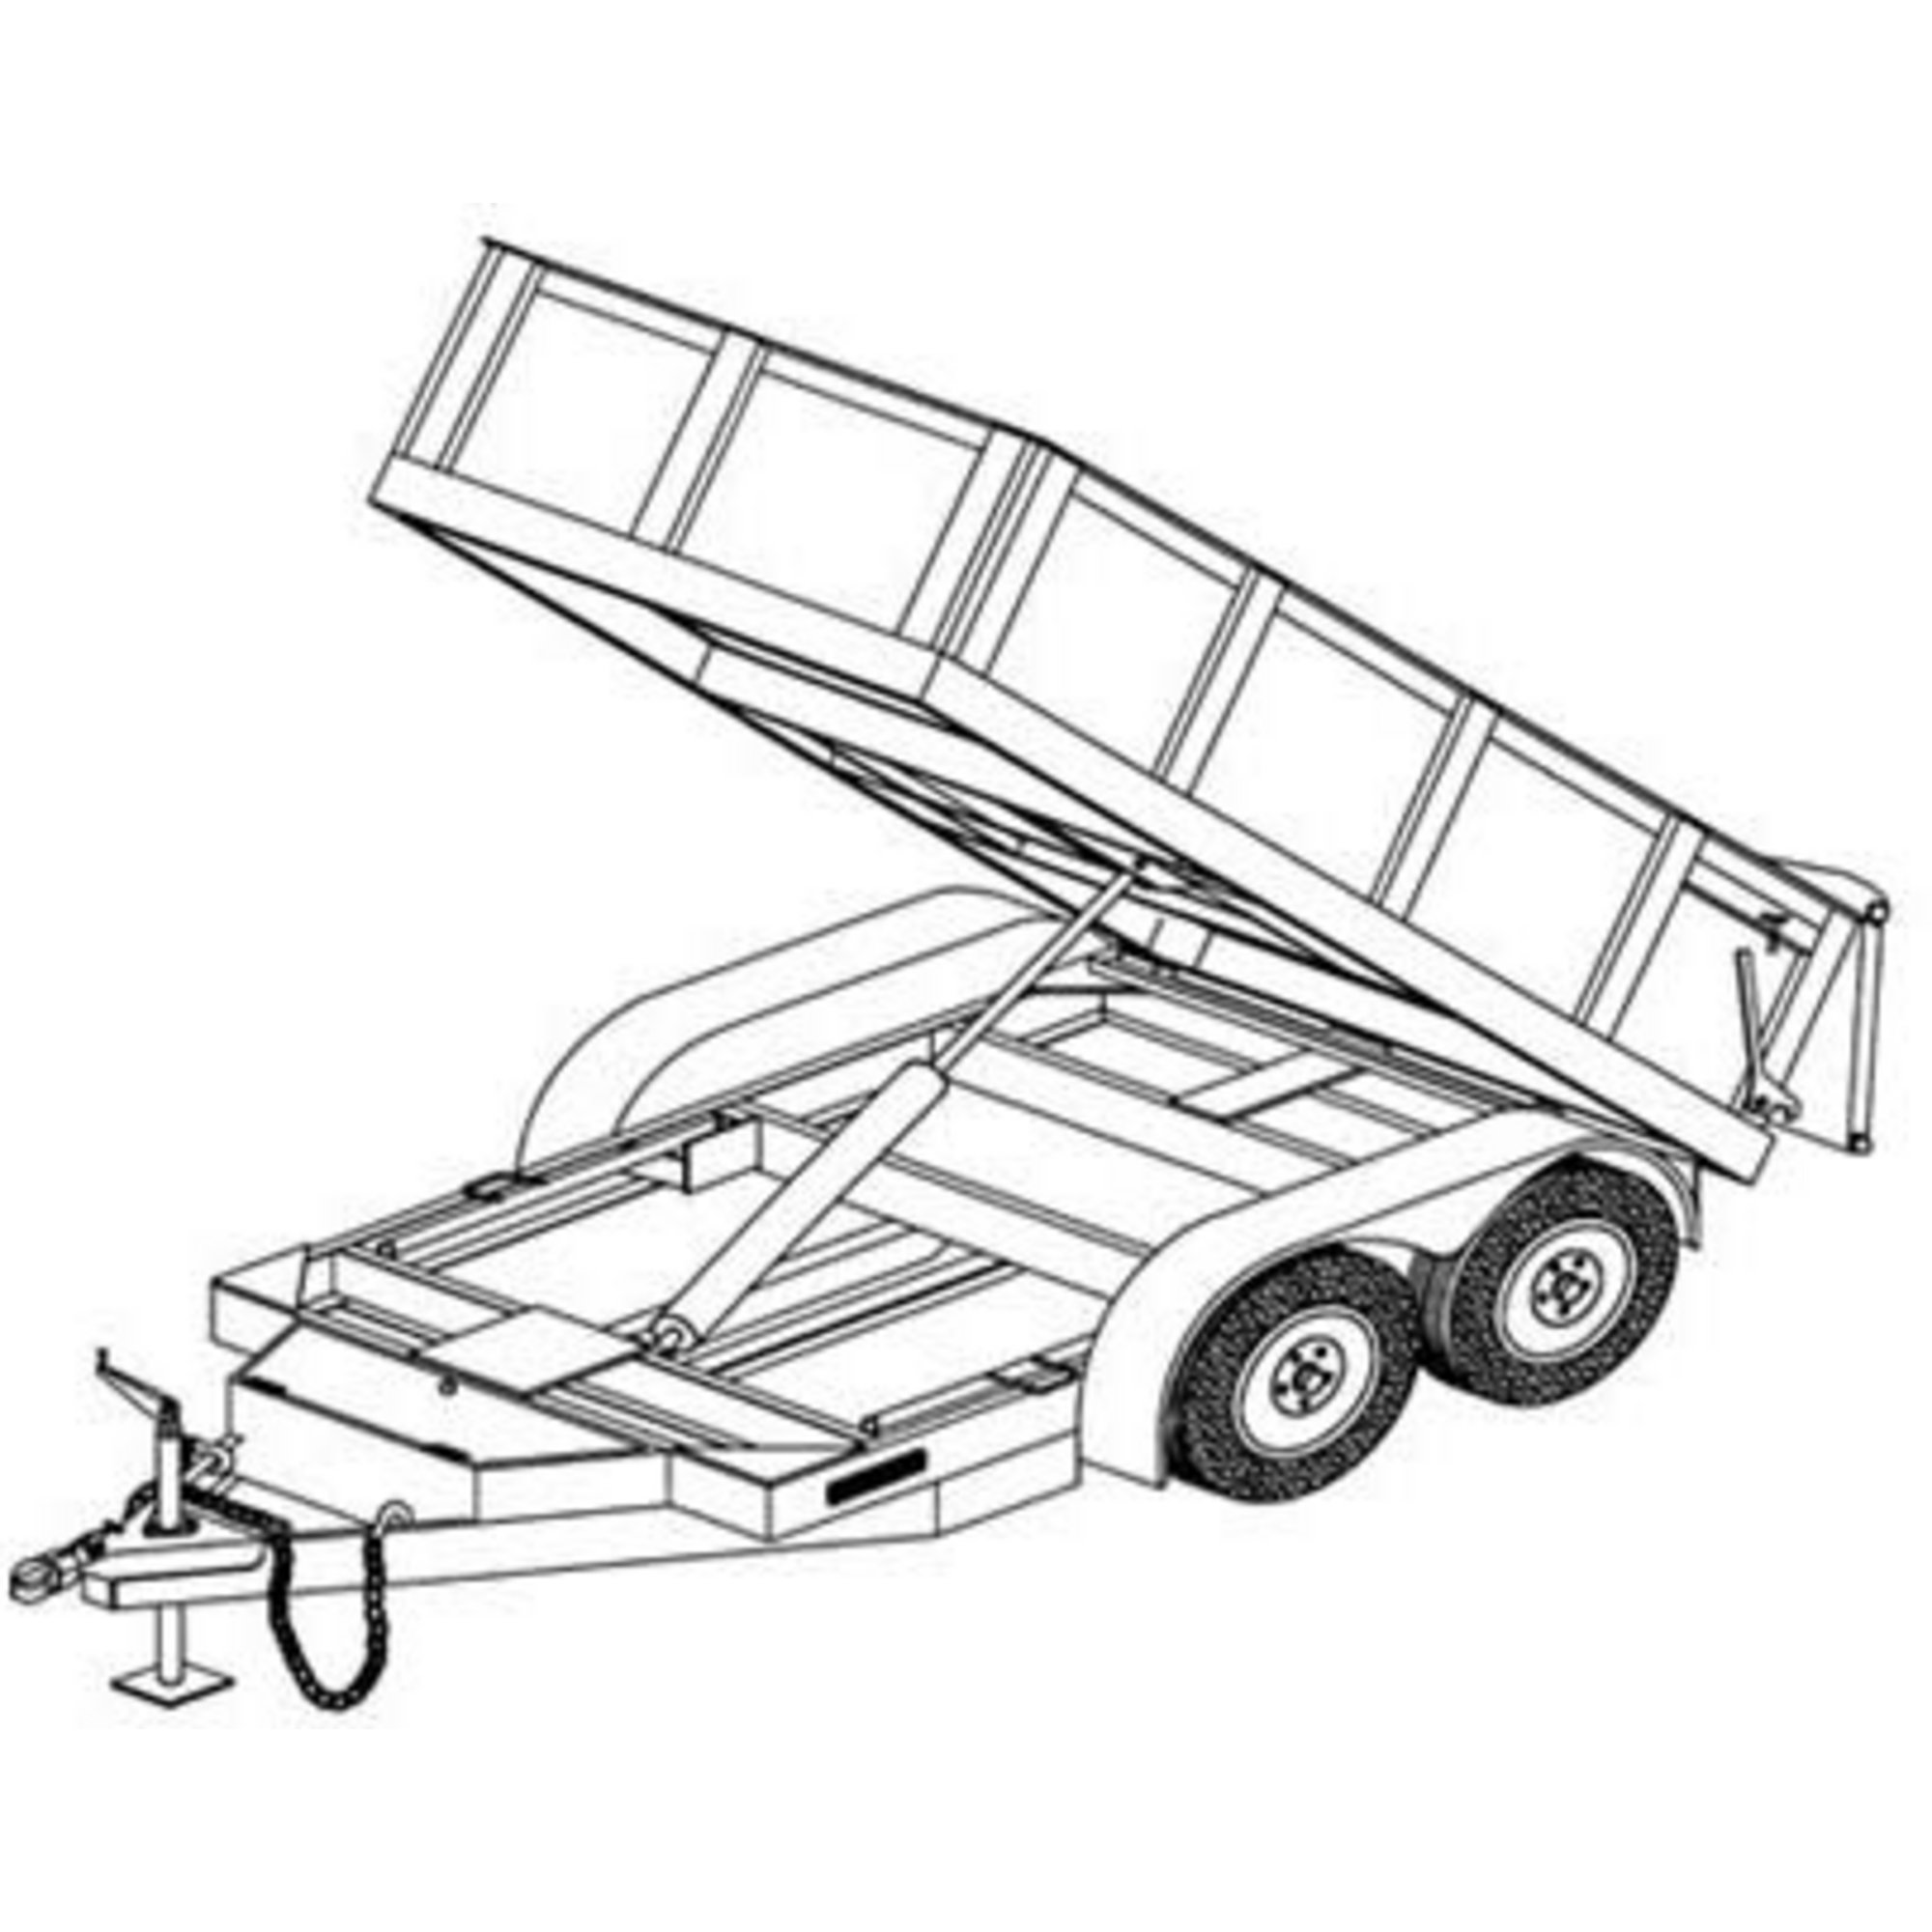 Semi Trailer Drawing At Getdrawings